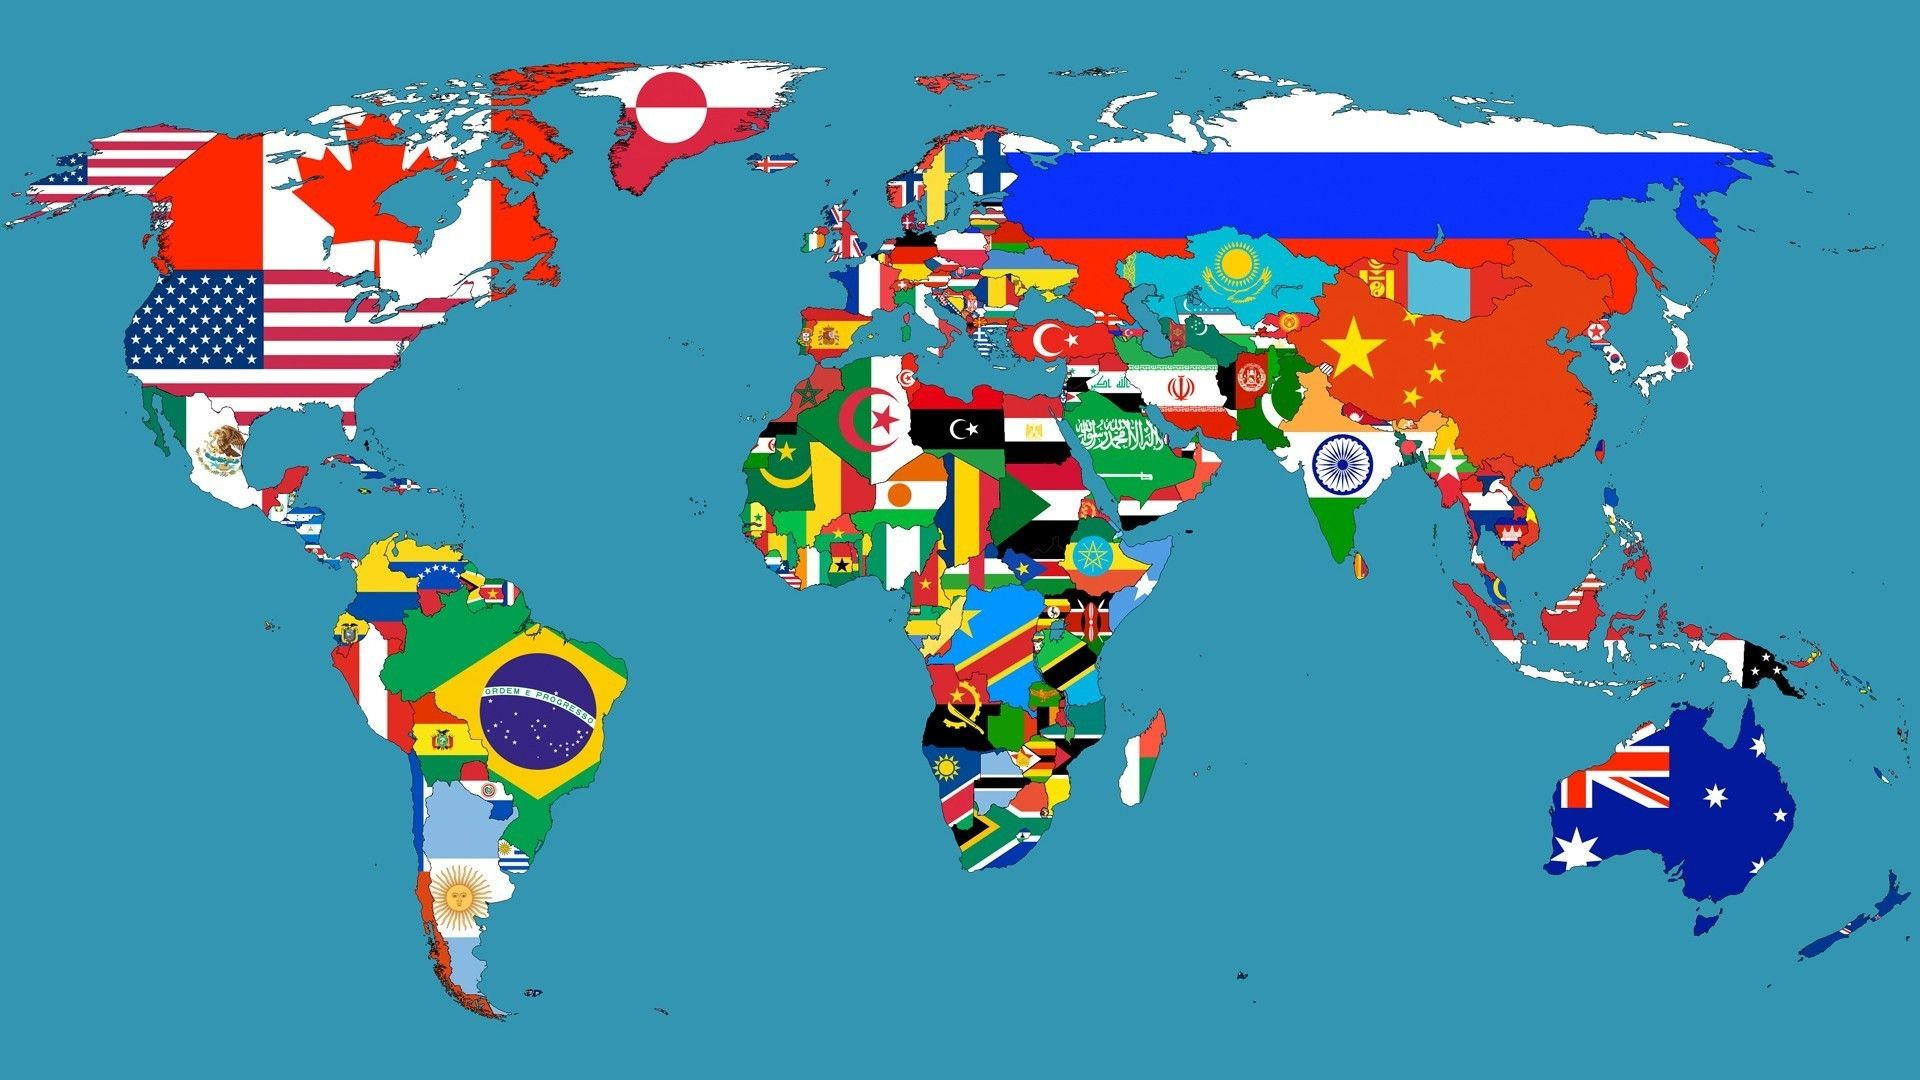 World map with countries free large images places to visit world map with countries free large images gumiabroncs Choice Image